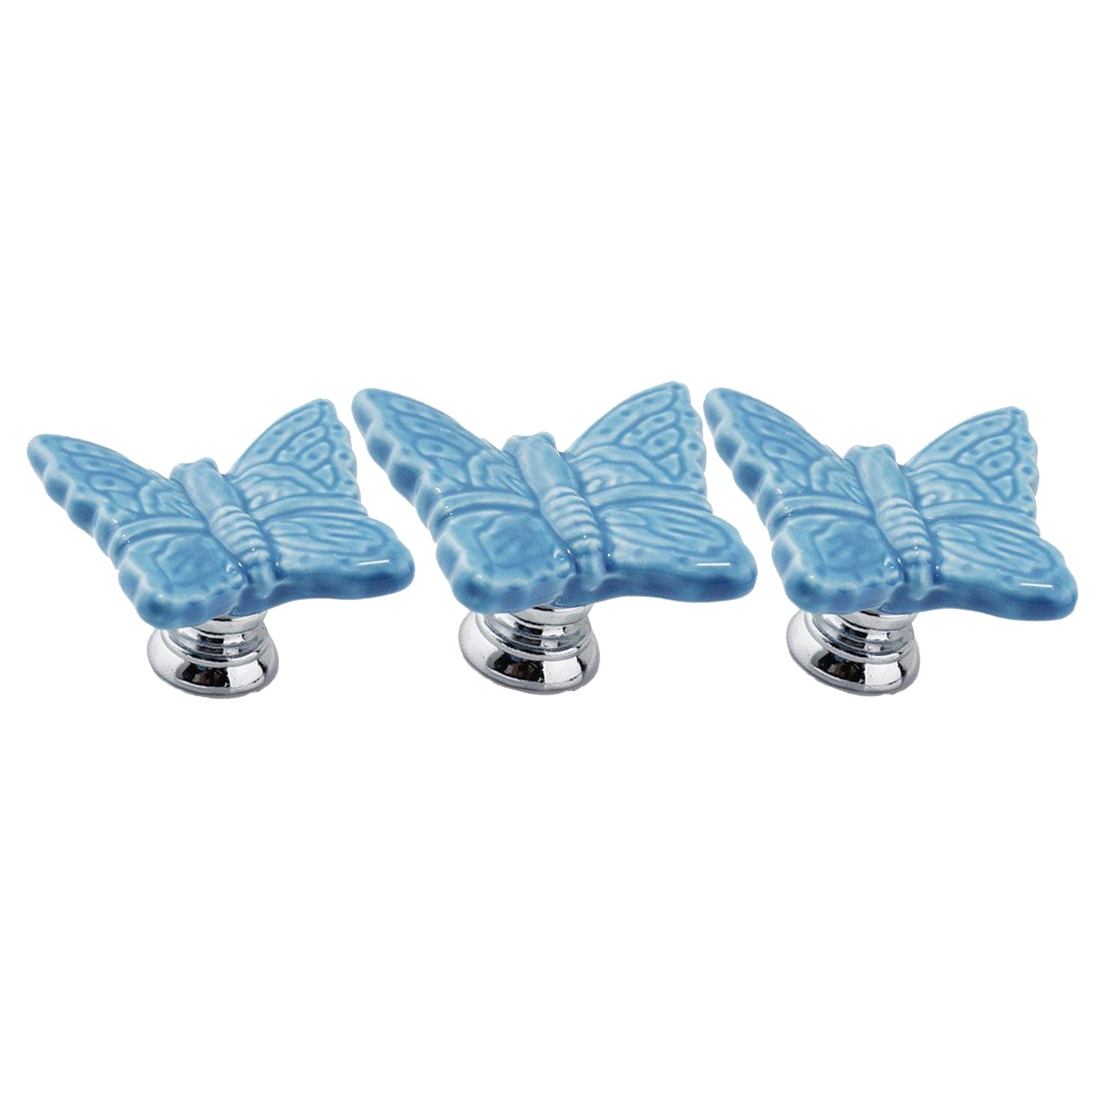 5PCS Blue Ceramic Butterfly Cabinet Knobs,Drawer Pulls Handles Set,Ceramic Butterfly Shape Knobs for Door Dresser Drawer children room conch shape ceramic drawer cabinet wardrobe pulls knobs blue white office furniture handles